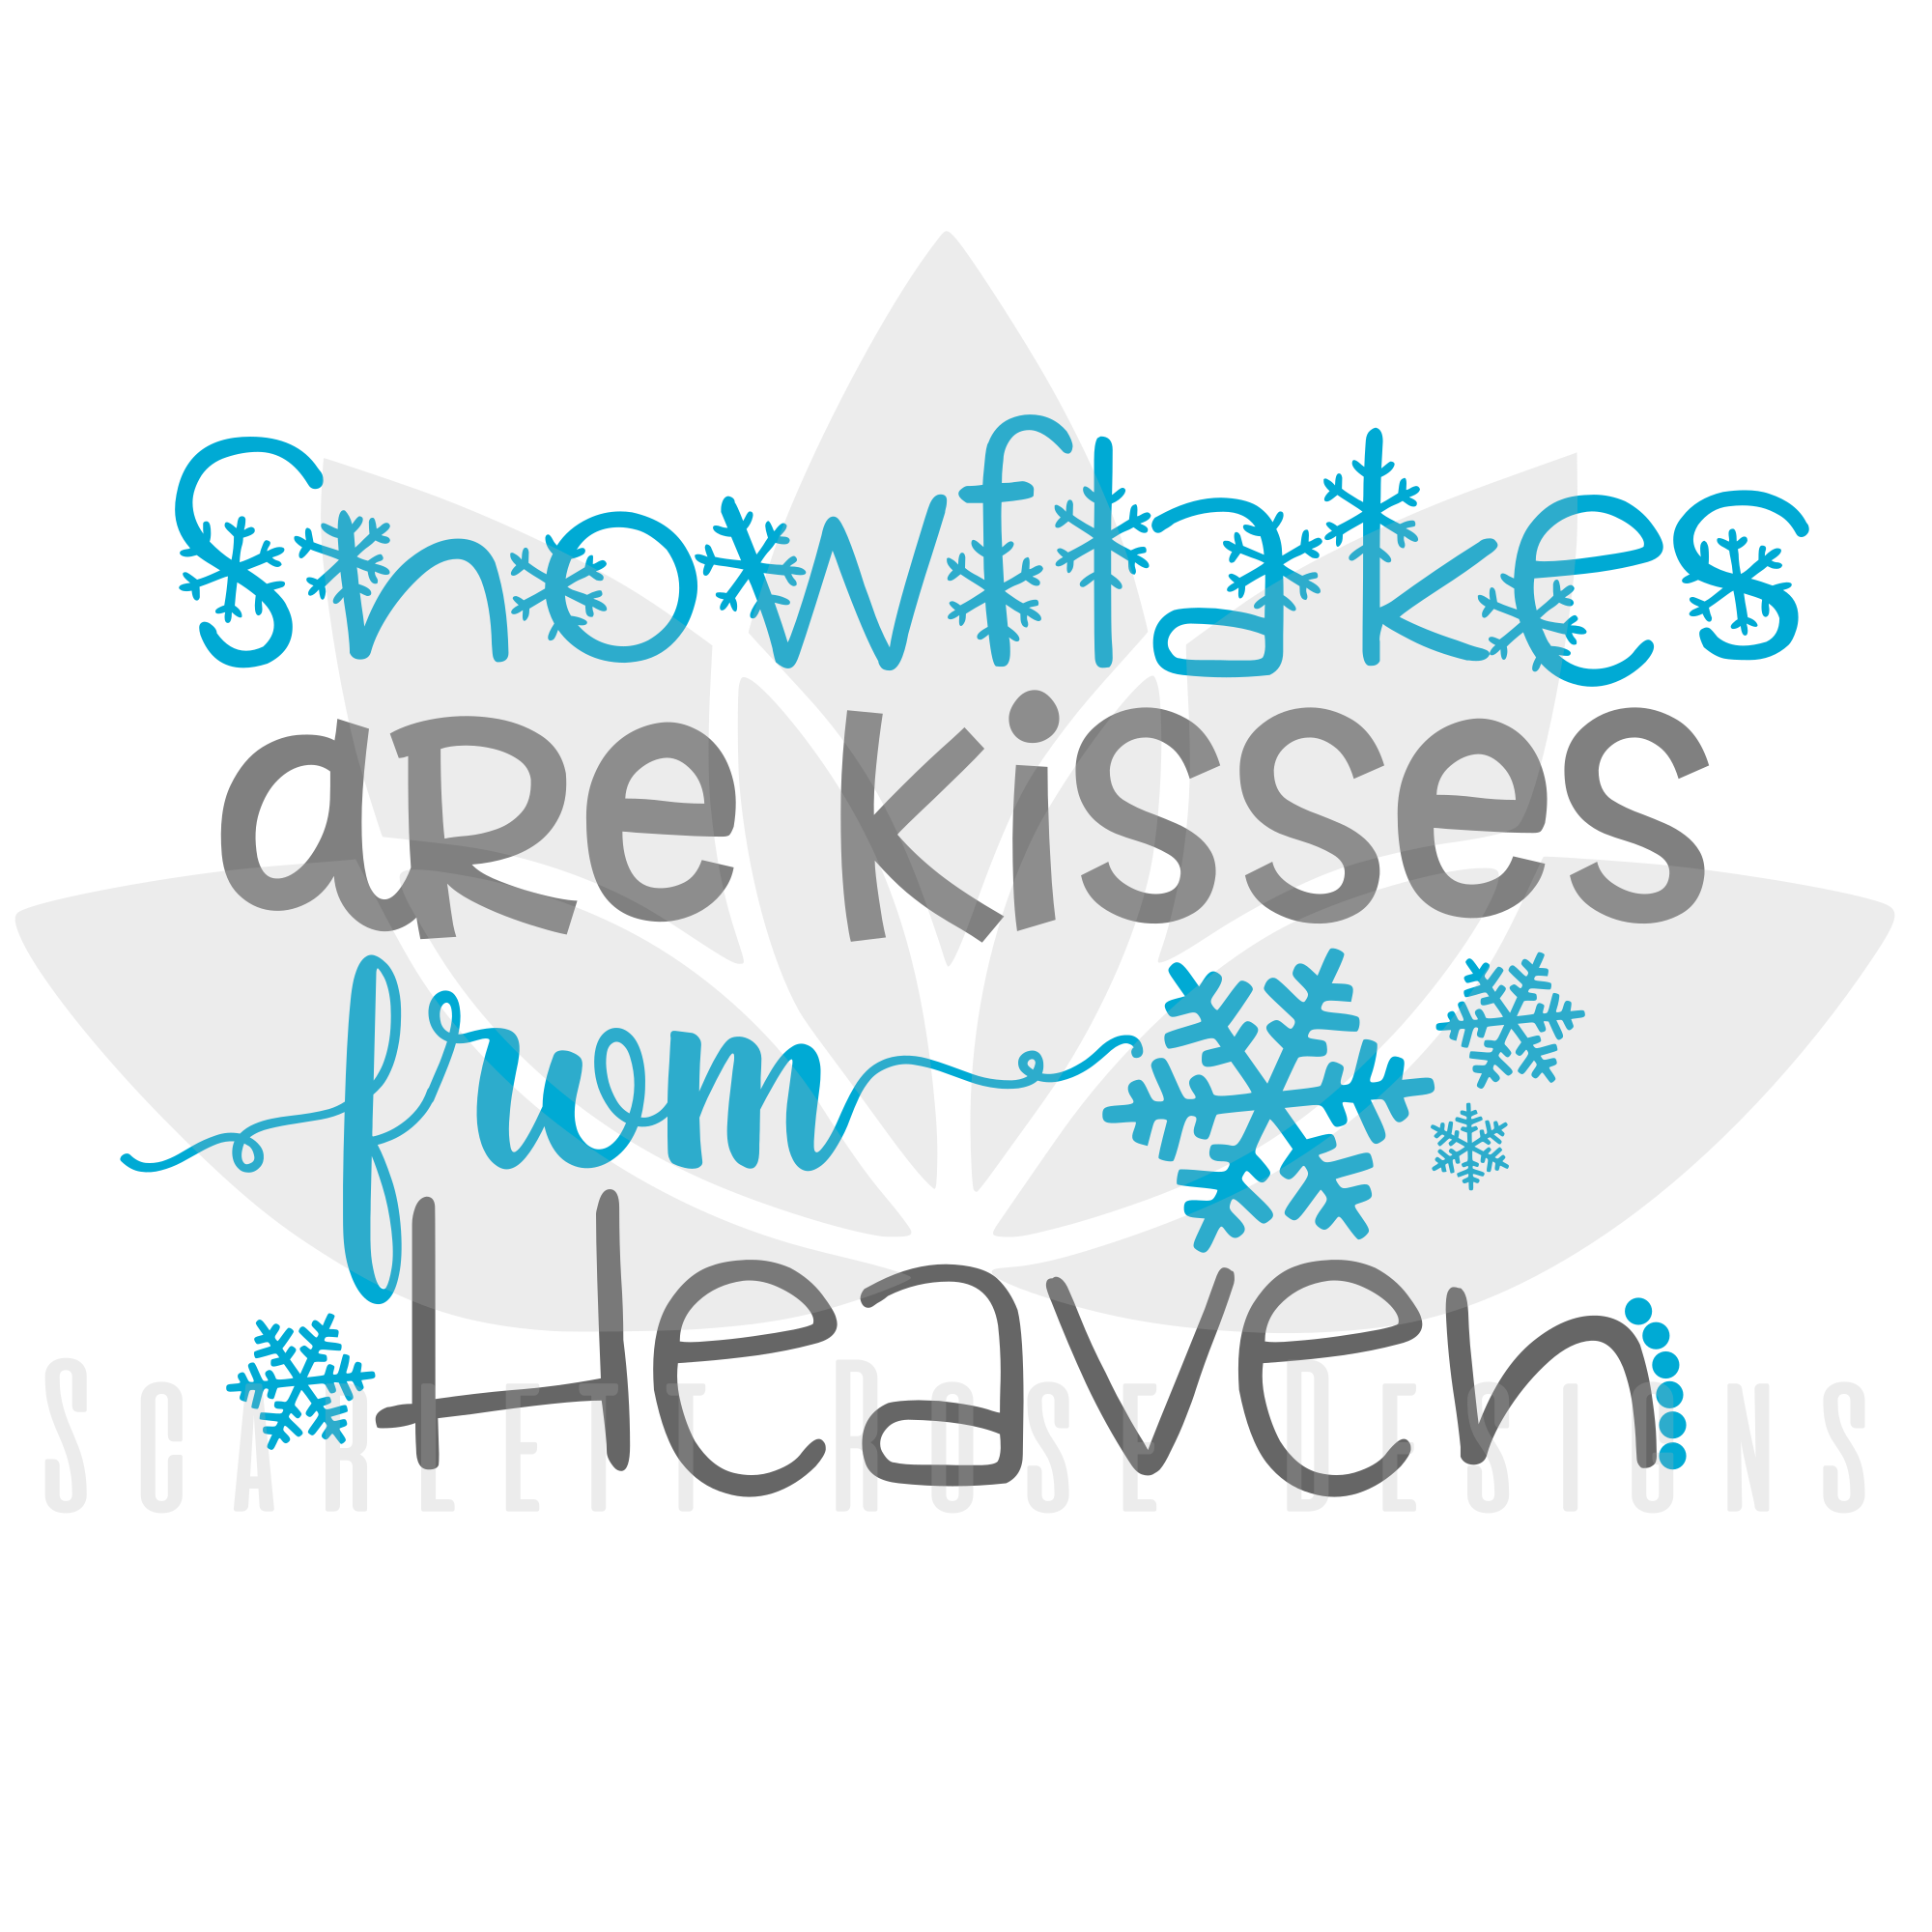 Christmas In Heaven Svg.Christmas Svg Cut File Snowflakes Are Kisses From Heaven